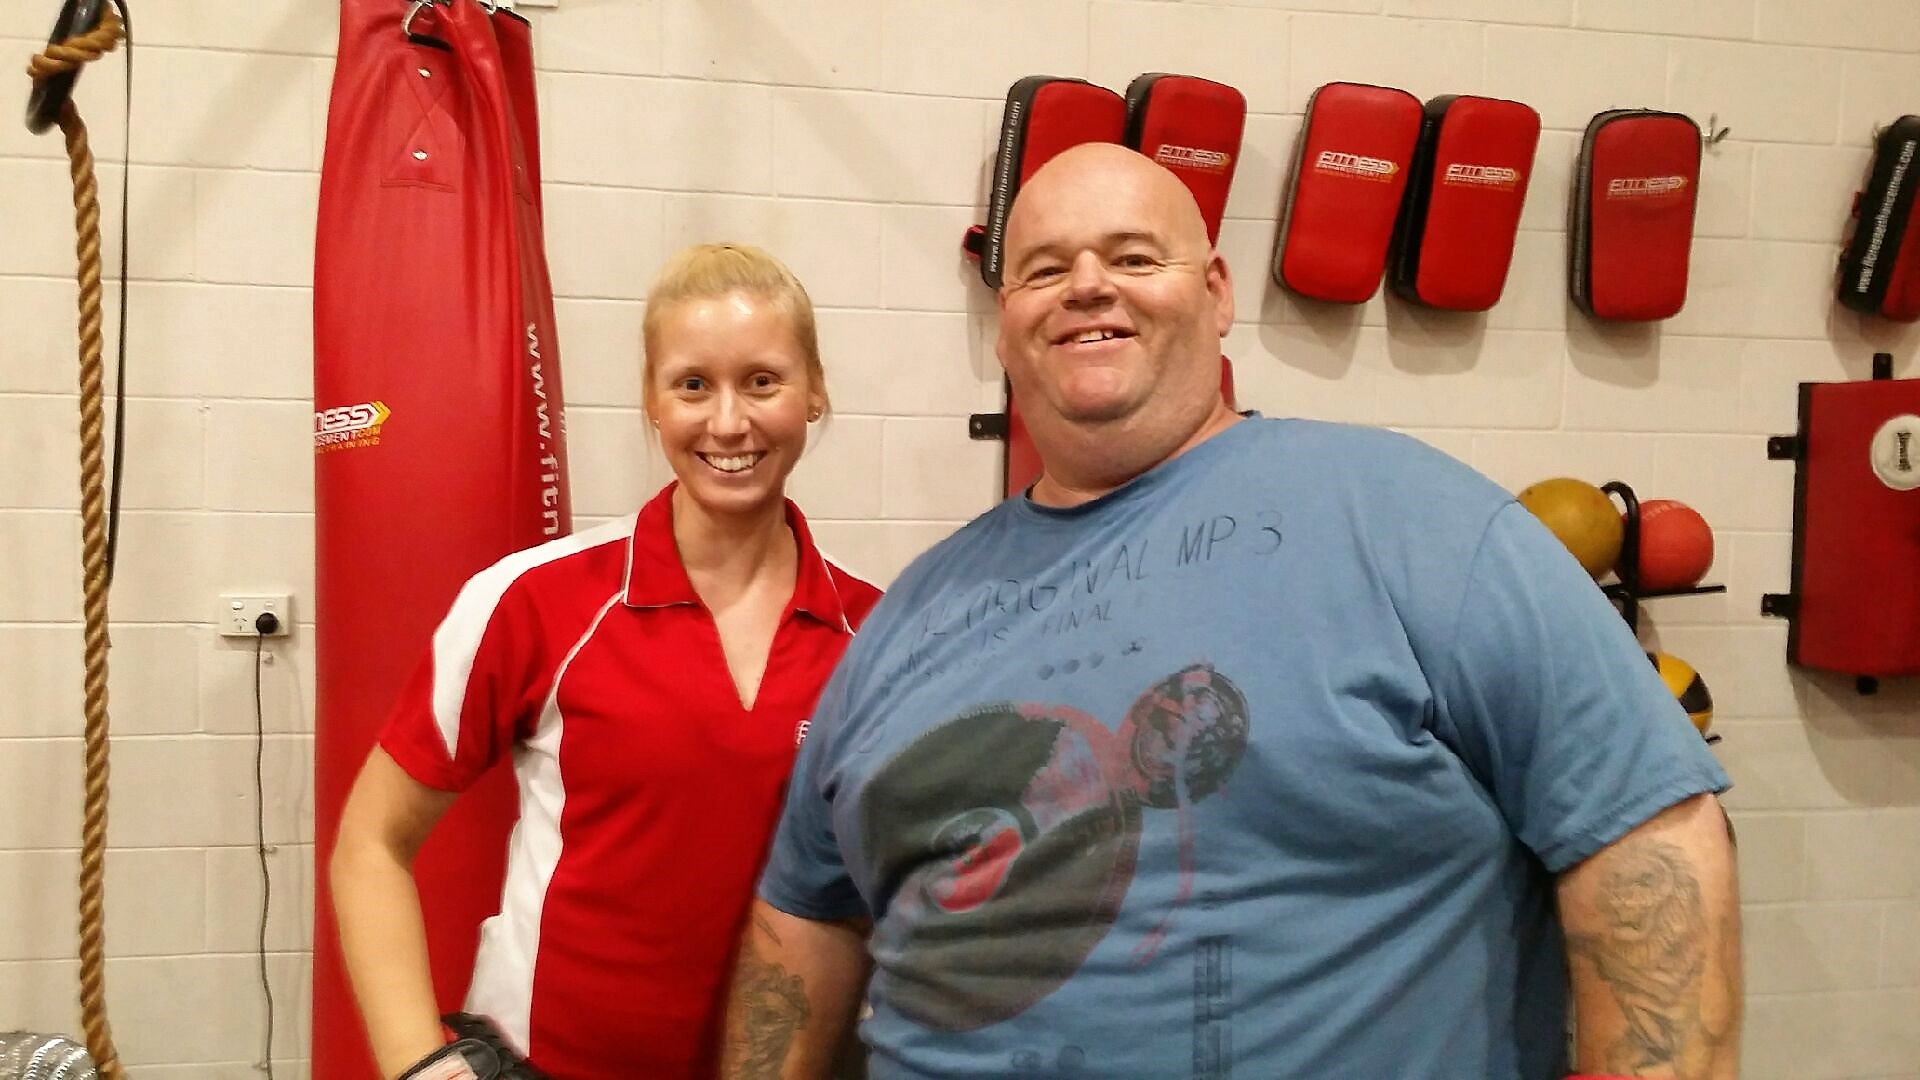 colin-and-trainer-pauliina